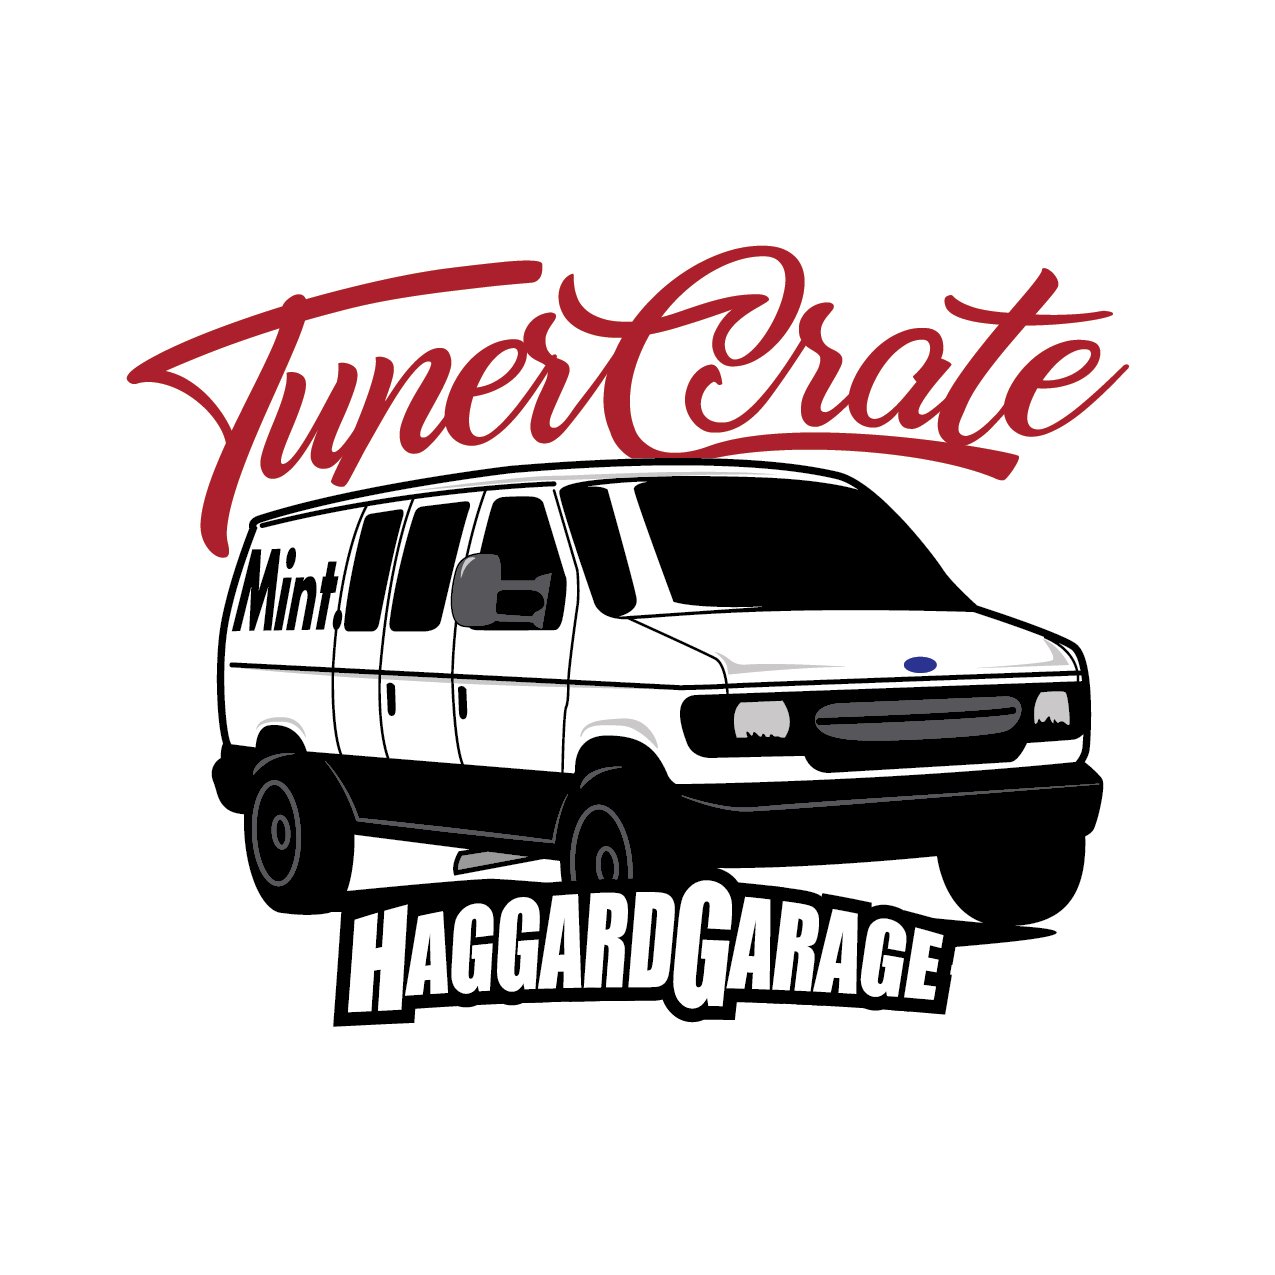 Haggard Garage x Tuner Crate Van Sticker